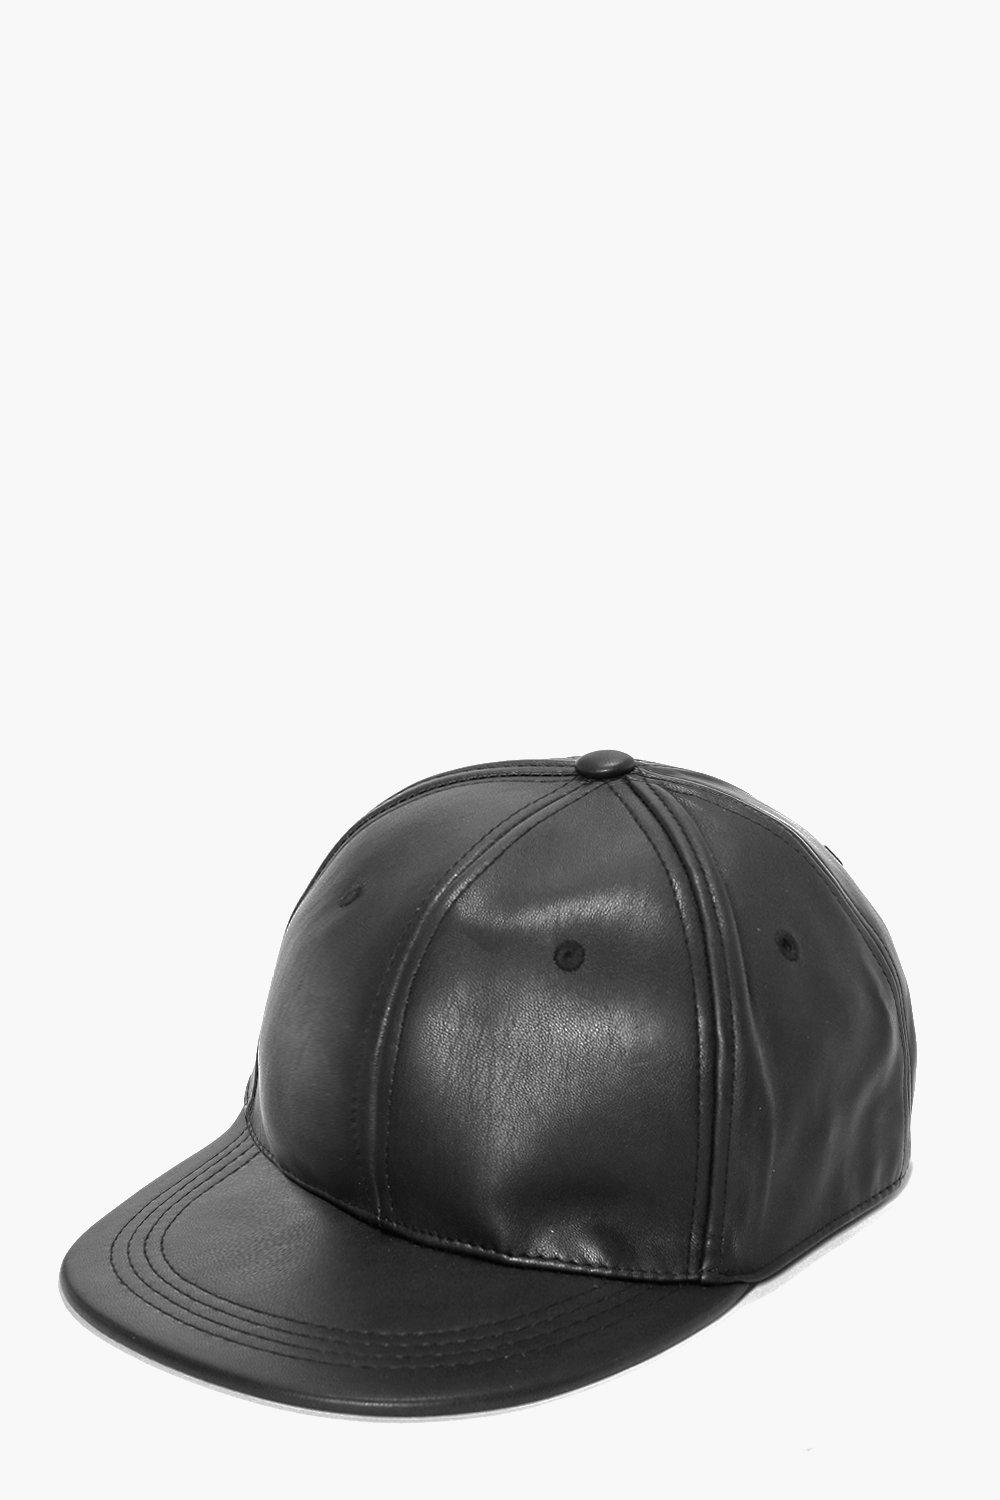 Tia Leather Look Baseball Cap